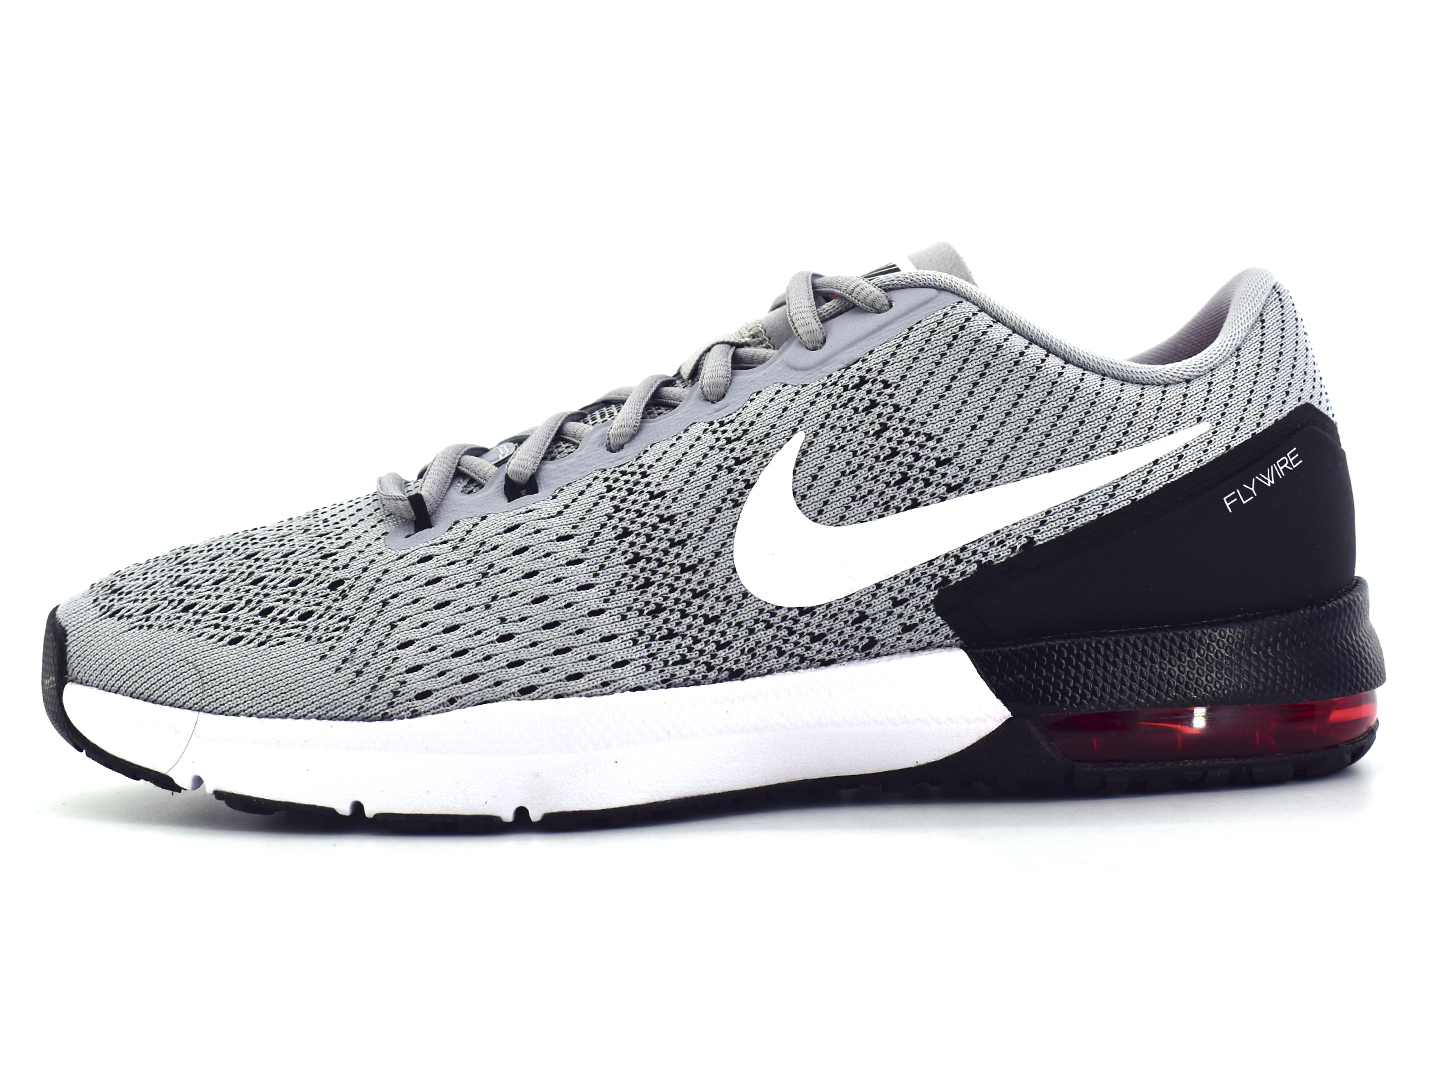 e73976aea74 ... training shoes for men lyst af92e 726e1  clearance nike 820198 016 wolf grey  white univ red black air max typha 25 31 ed734